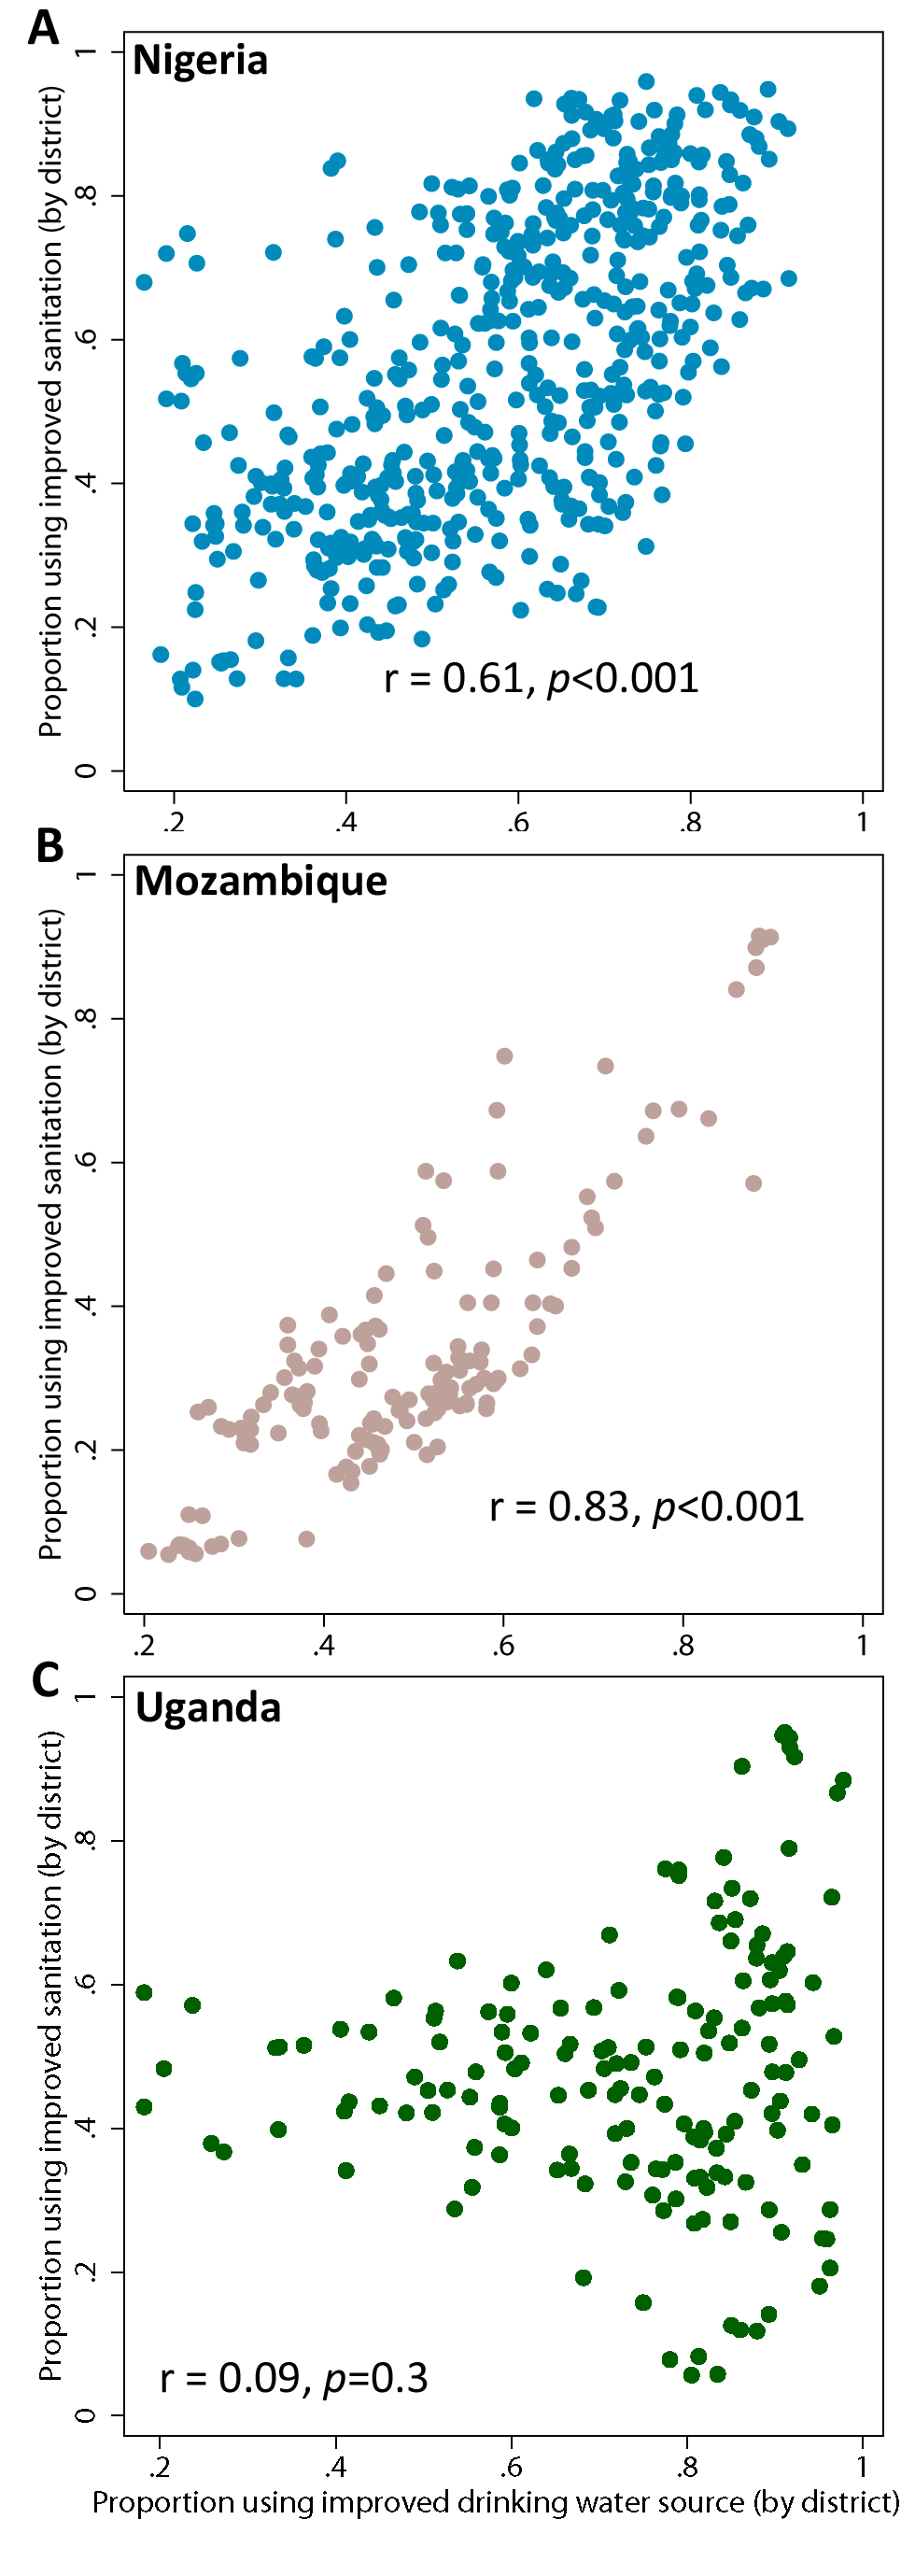 Comparison of coverage in improved drinking water against improved sanitation in overall population, by second administrative area.